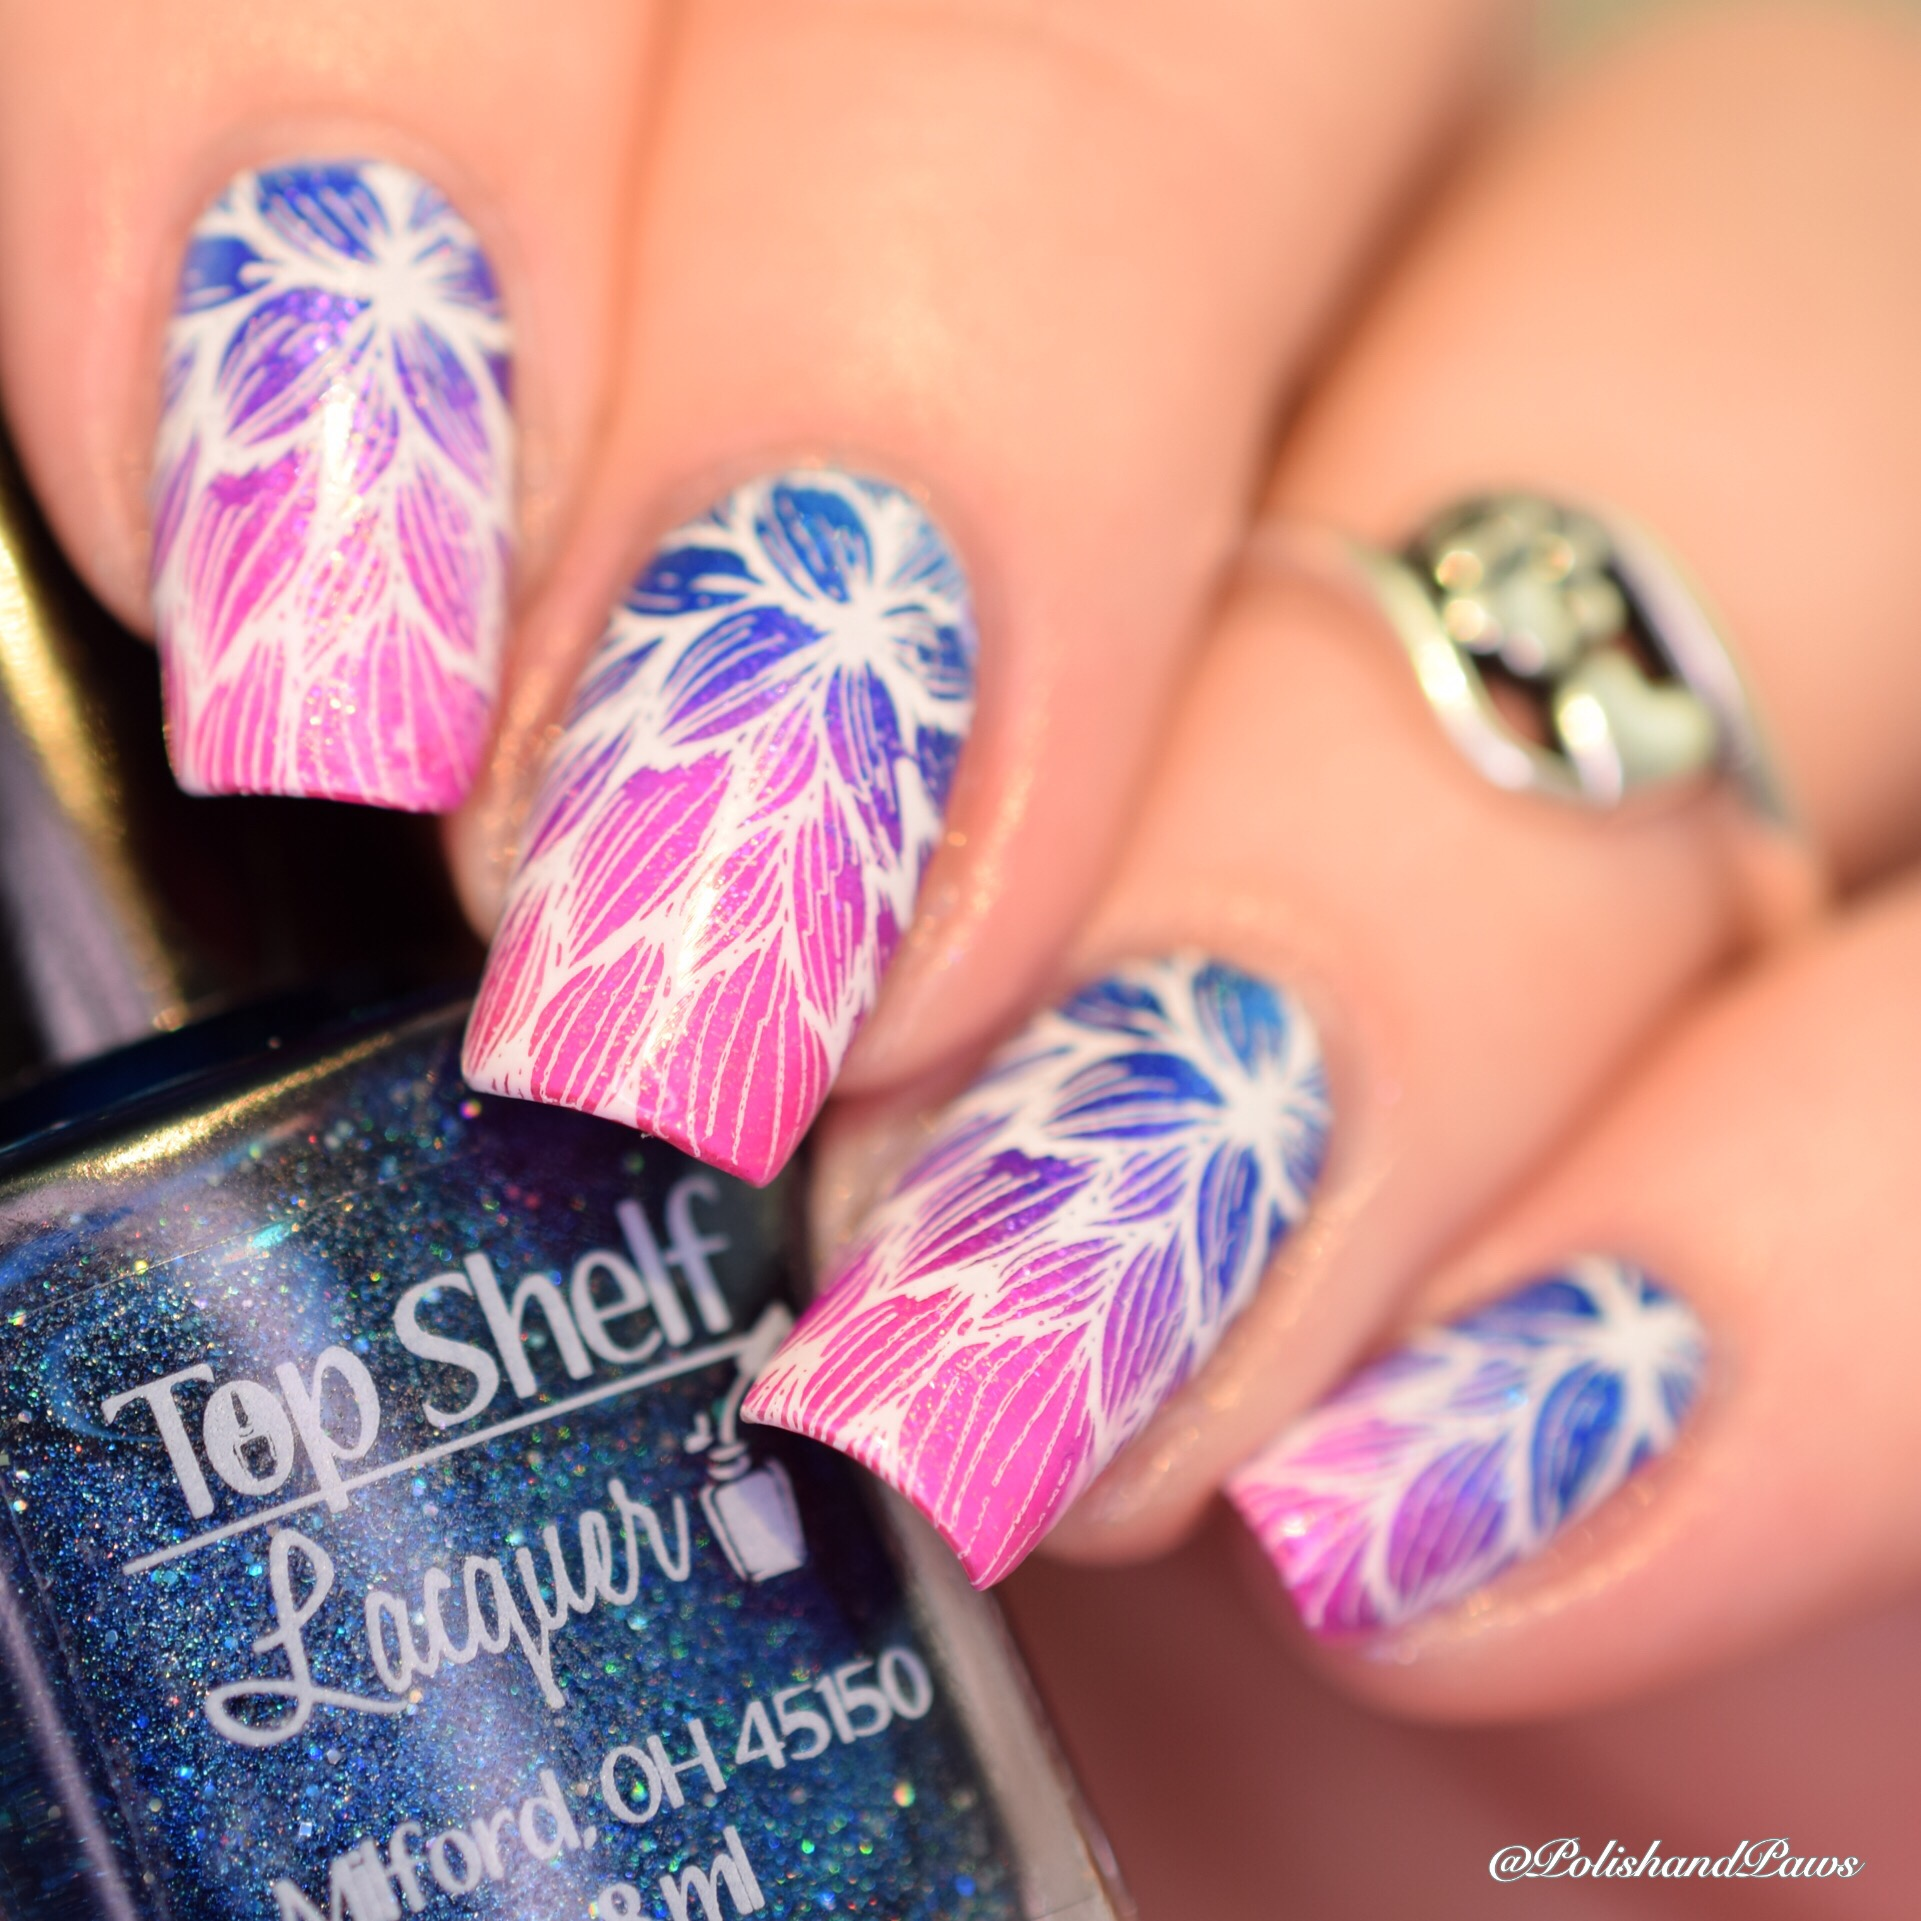 Nail Art ~ Top Shelf Lacquer Gradient | Polish and Paws